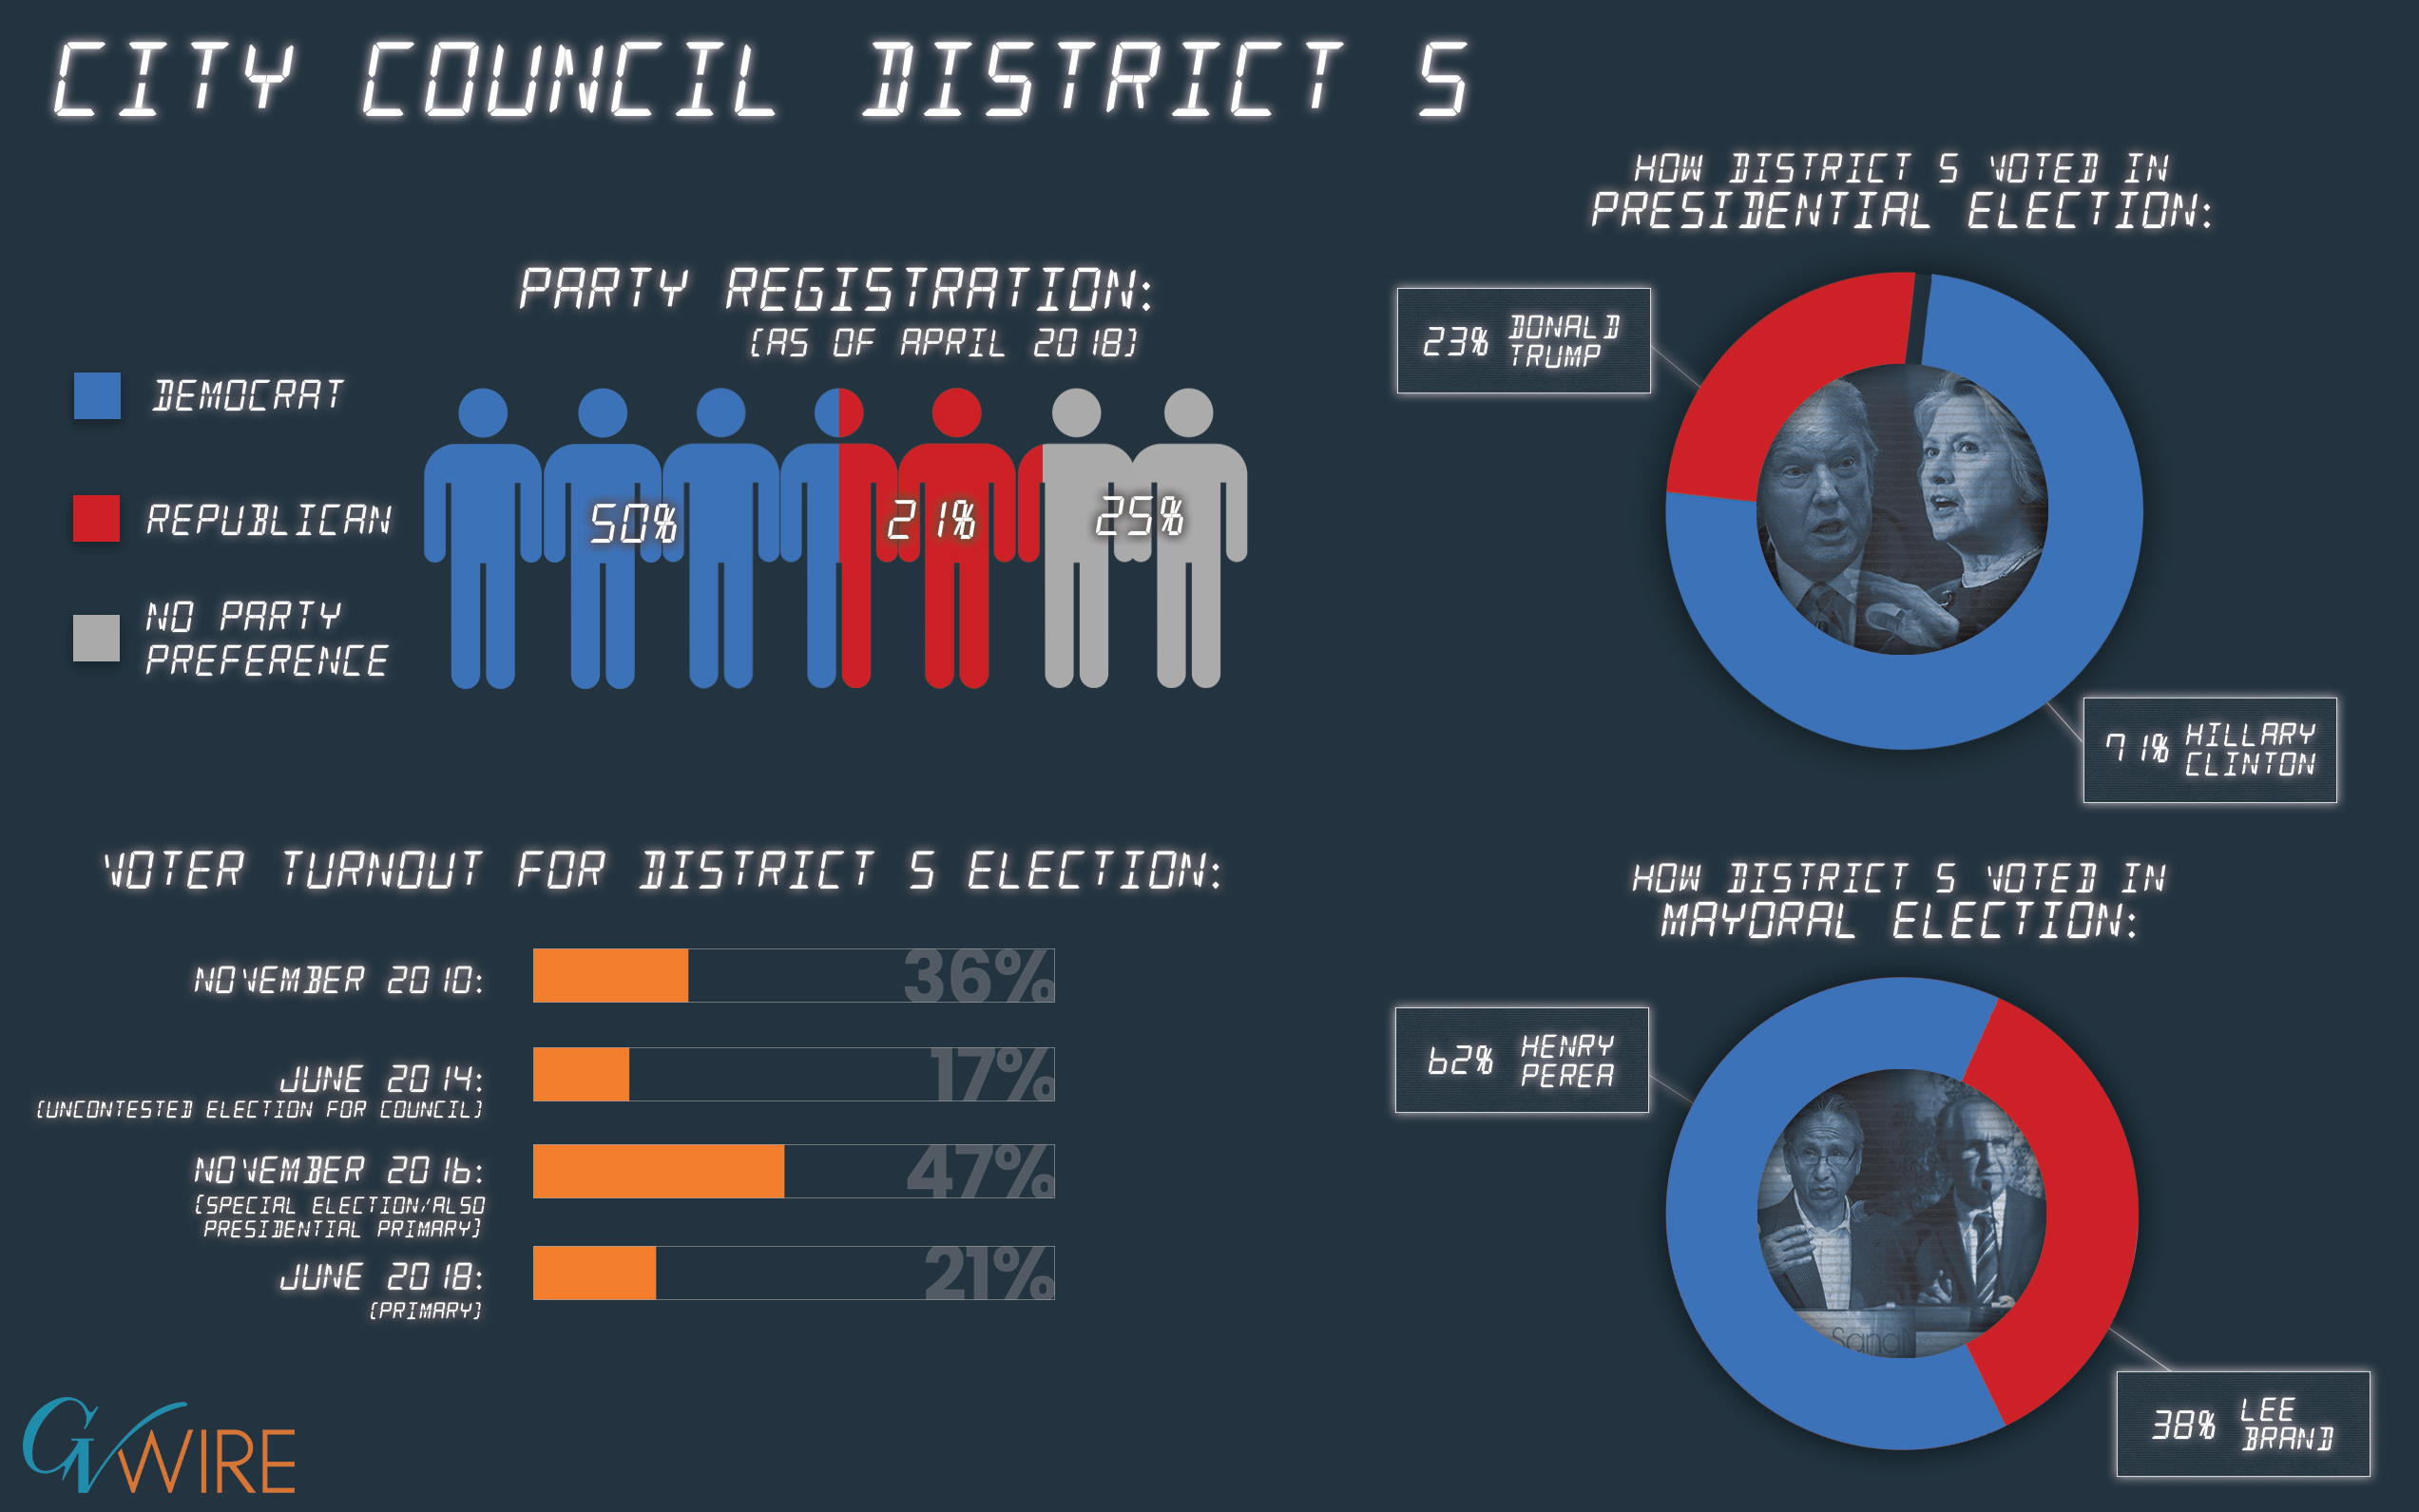 Infographic of City Council District 5 demographics